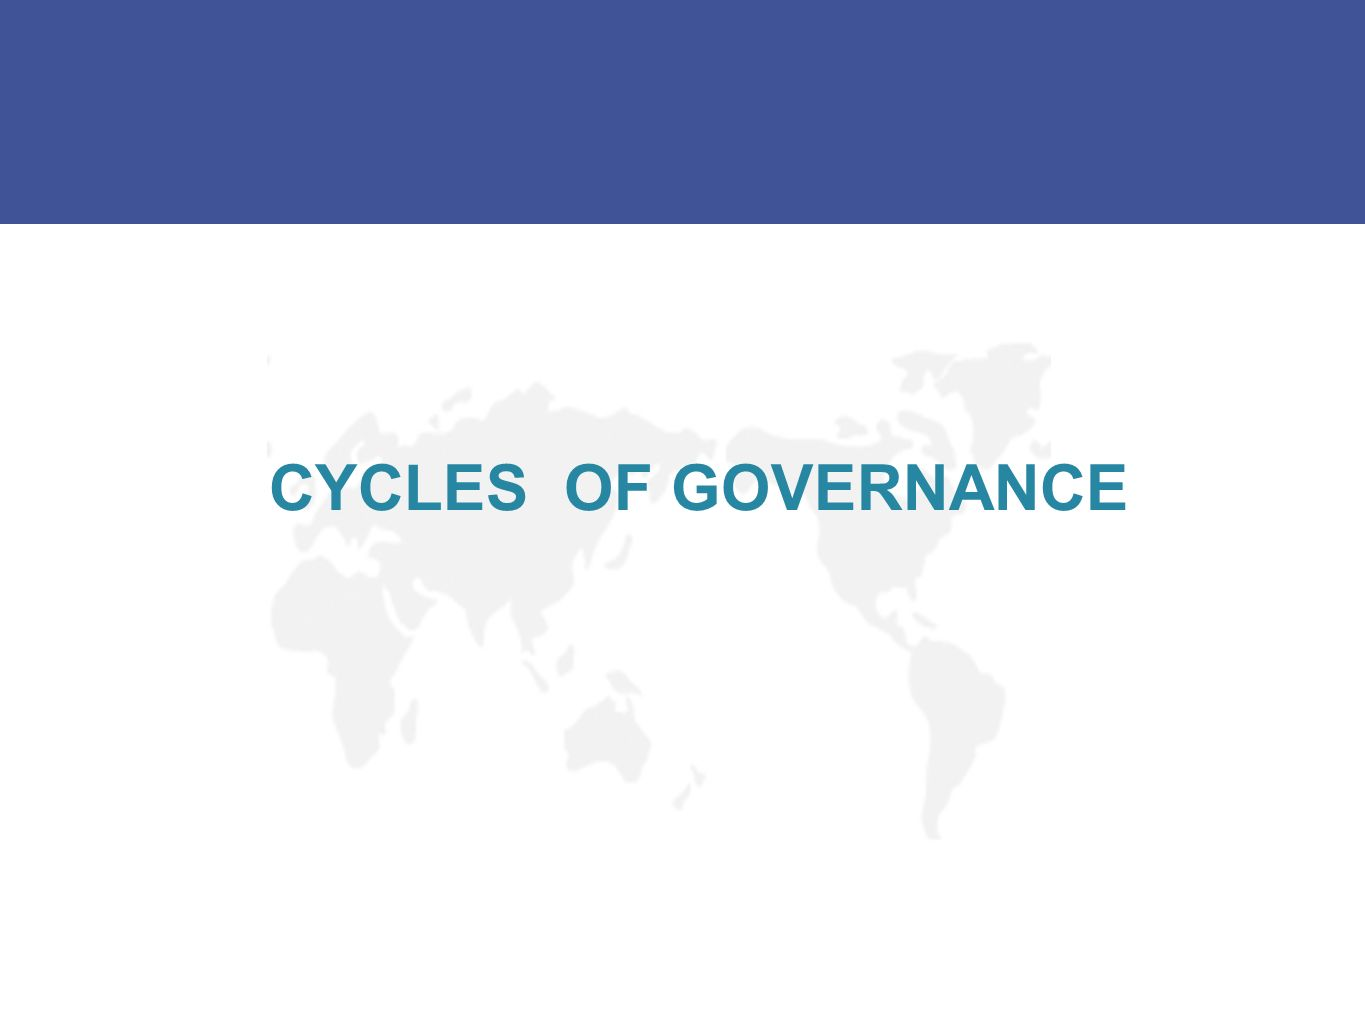 CYCLES OF GOVERNANCE